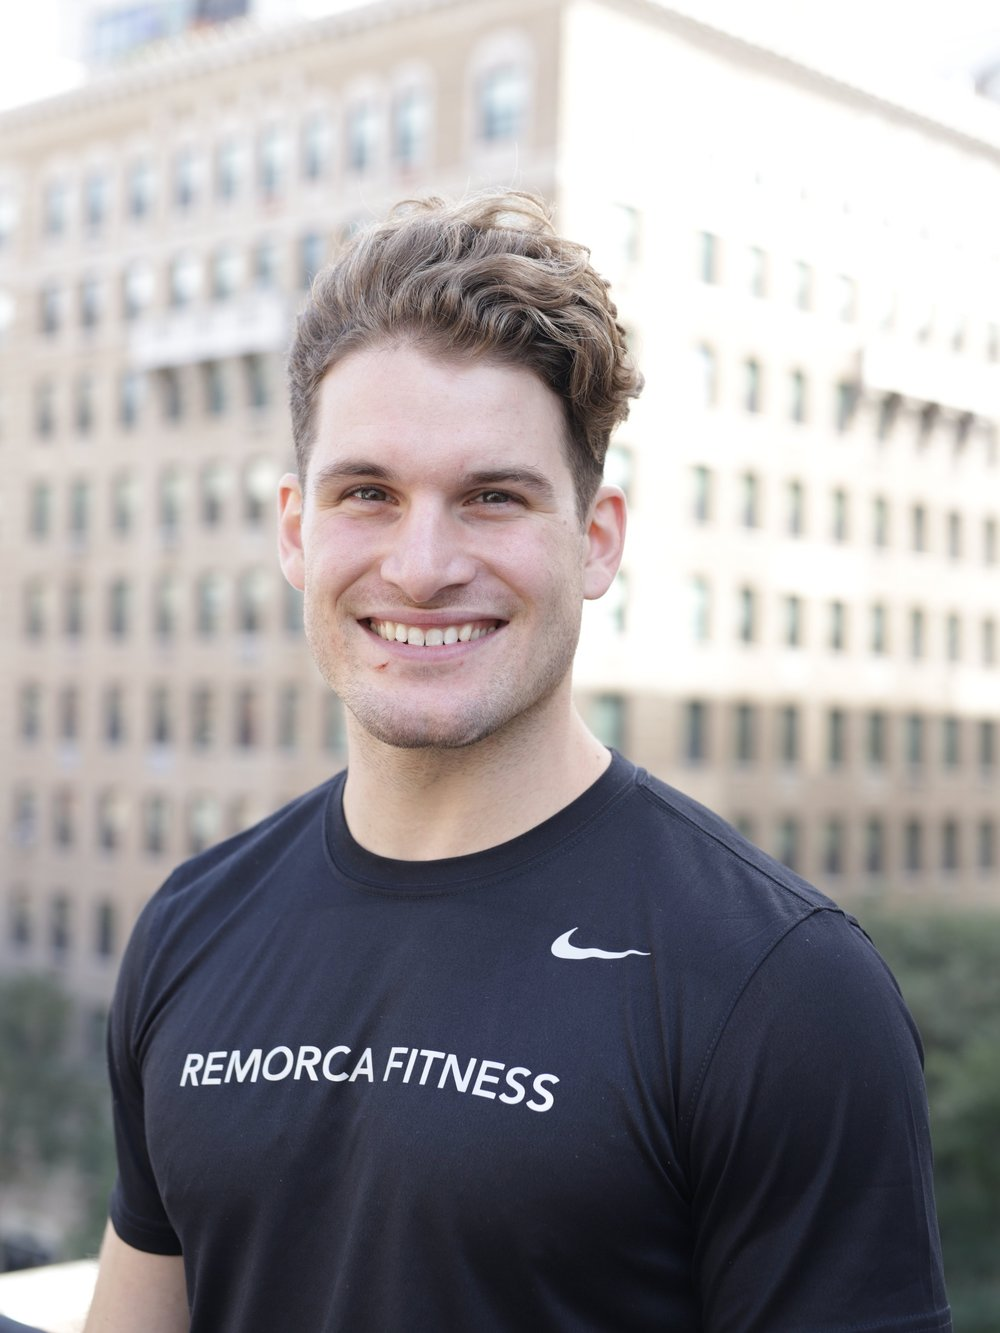 CONRAD - PERSONAL TRAINER AT REMORCA FITNESS MIDTOWNCERTIFICATIONS:EDUCATION:SPECIALTY/EXPERTISE:FITNESS HOBBIES:NON FITNESS THING ABOUT ME